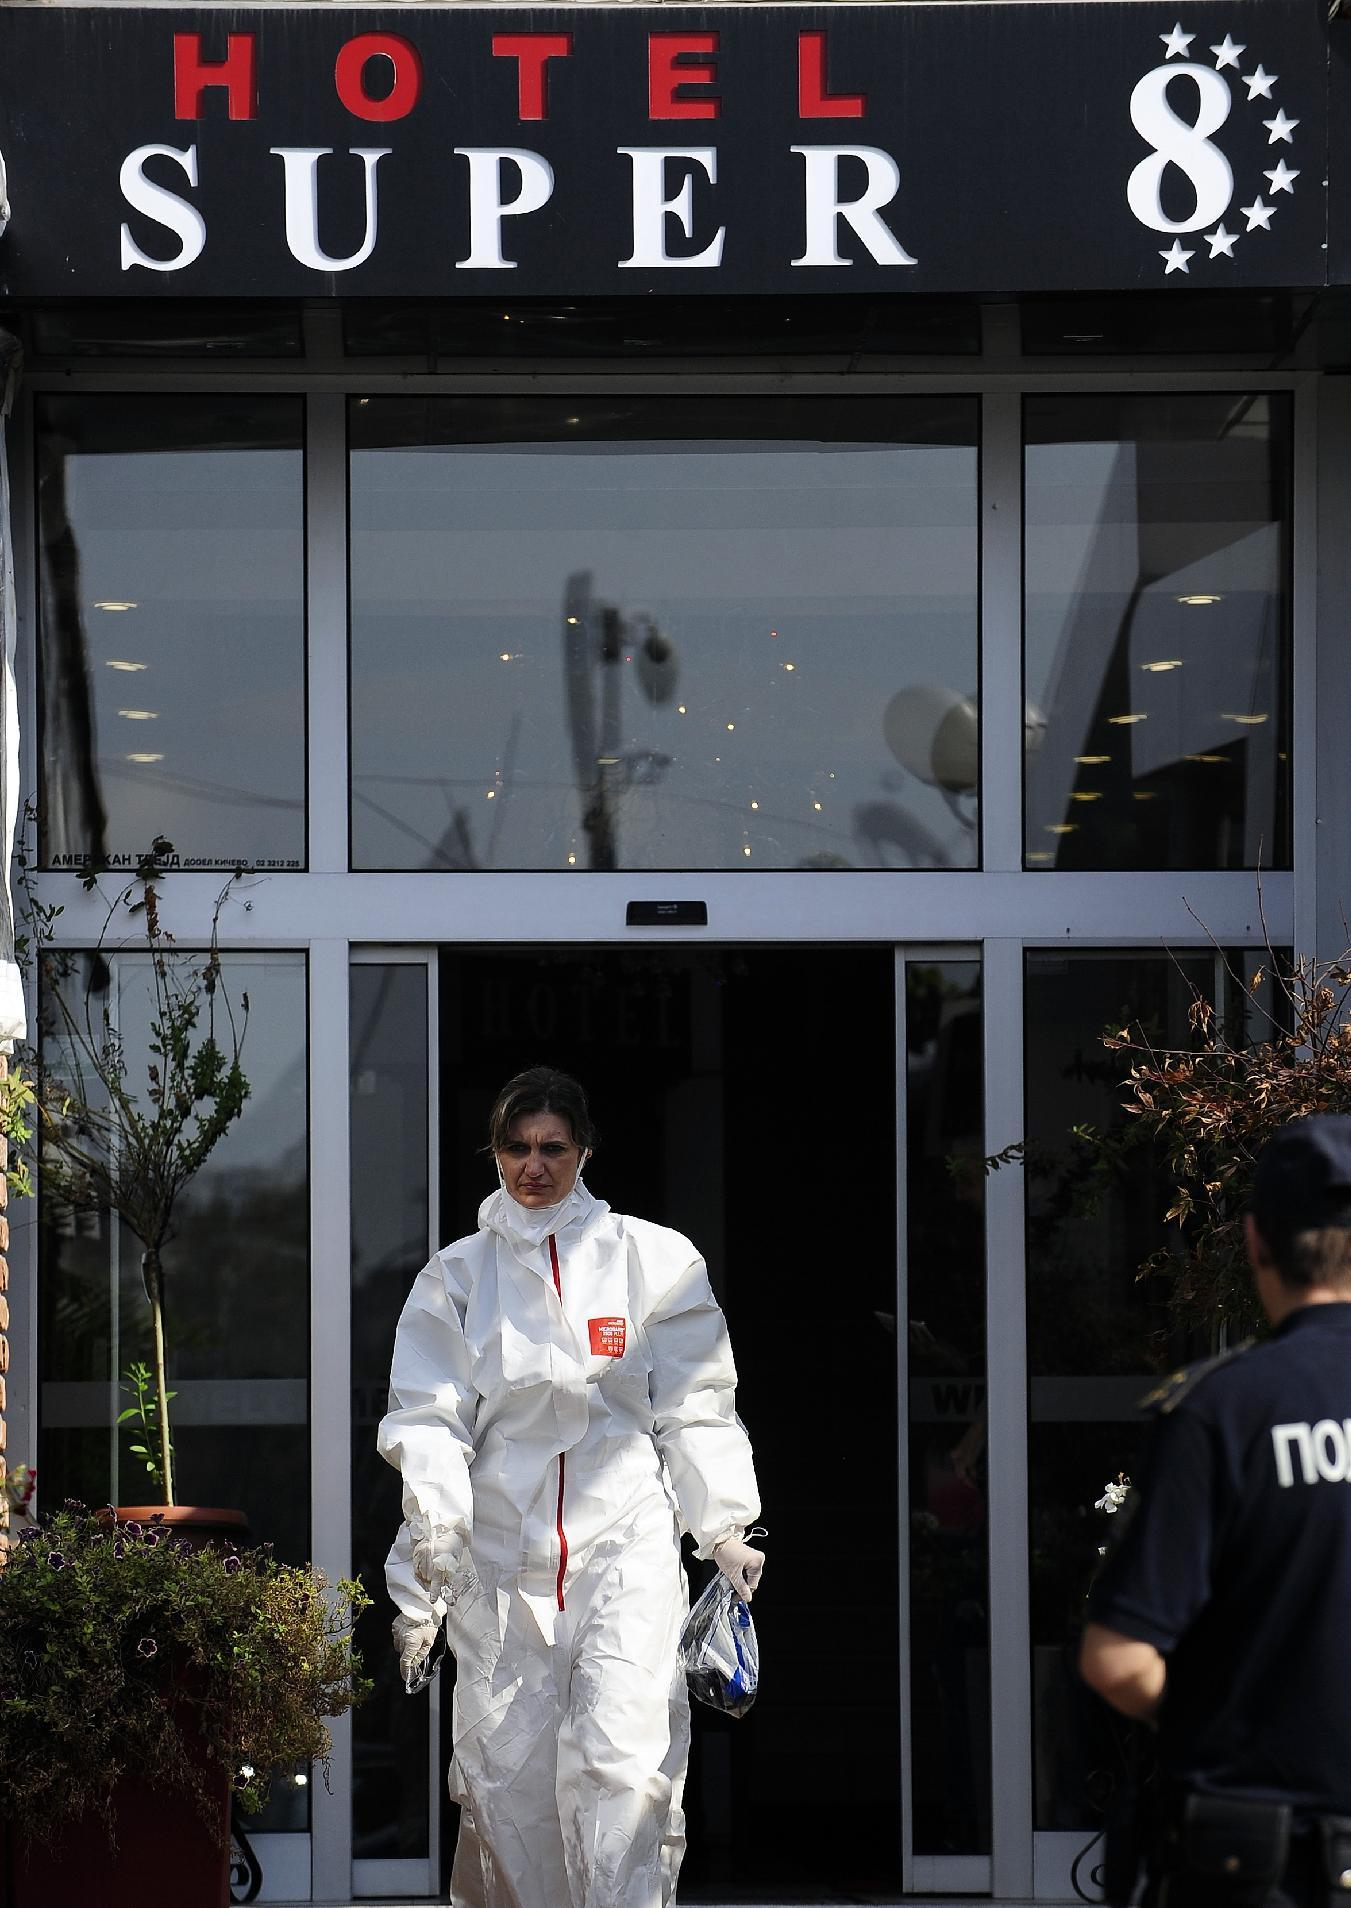 Medical staff exit the Super 8 hotel after visiting quarantined guests and personnel following the death of a British man who allegedly displayed Ebola-like symptoms, in Skopje on October 10, 2014 (AFP Photo/Robert Atanasovski)